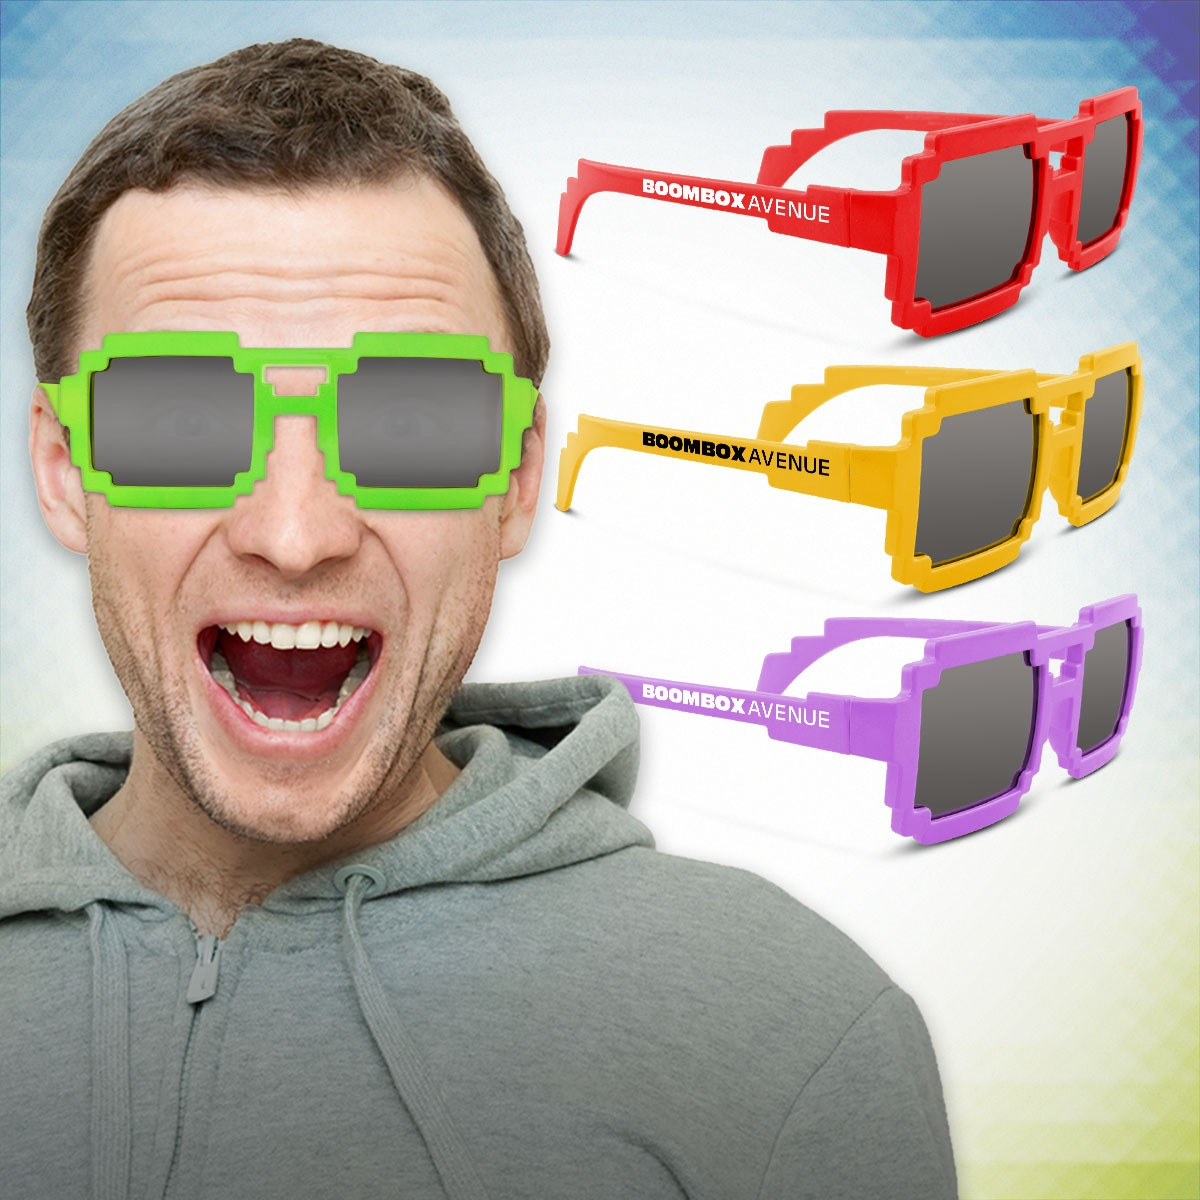 PIXEL MIRRORED SUNGLASSES - 12 PACK